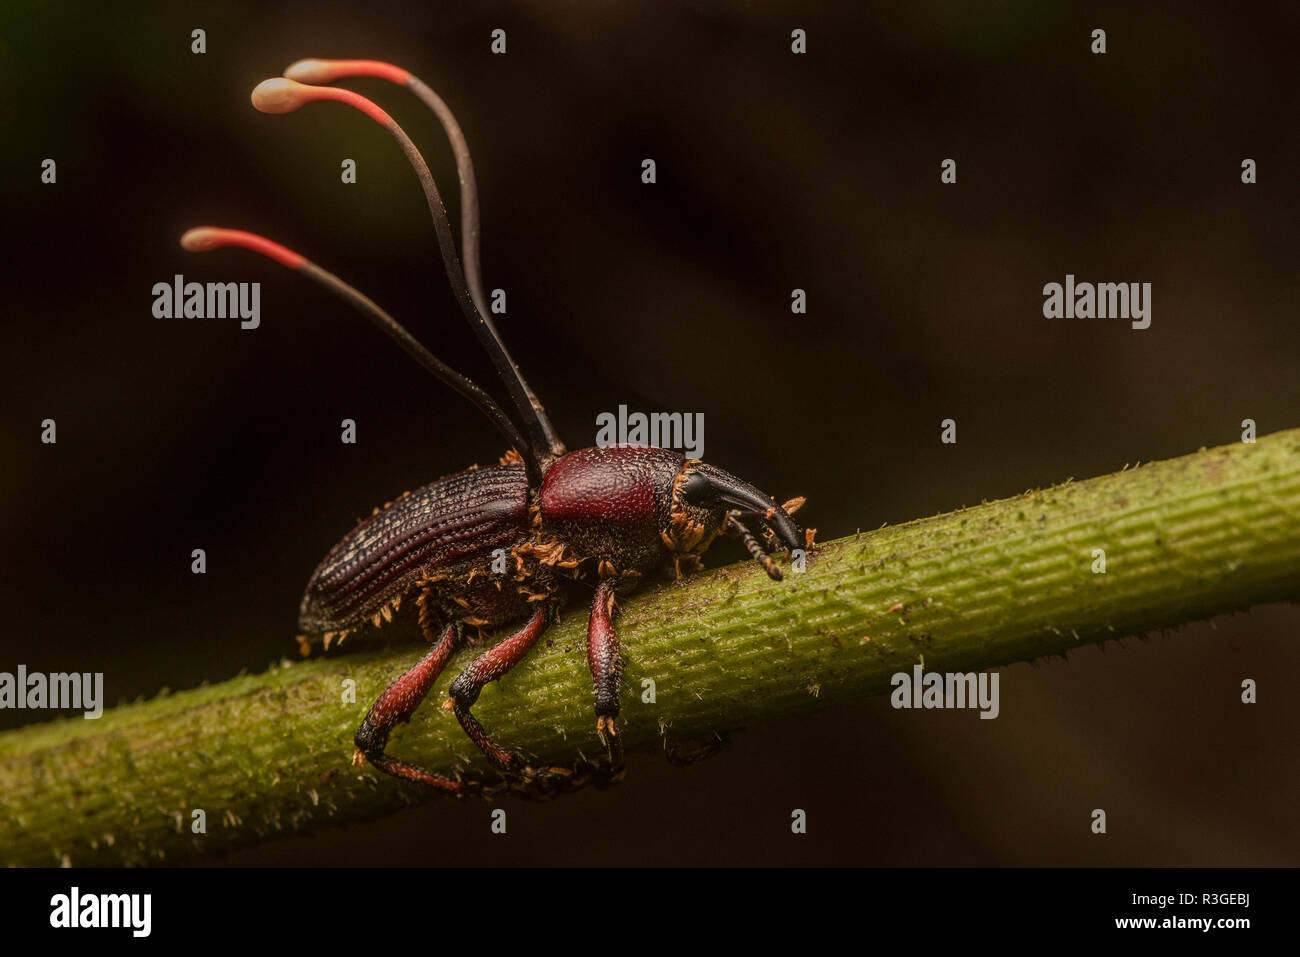 Ophiocordyceps curculionidae, a species of cordyceps fungus that specializes in attacking weevils. From Manu National Park, Peru. Stock Photo